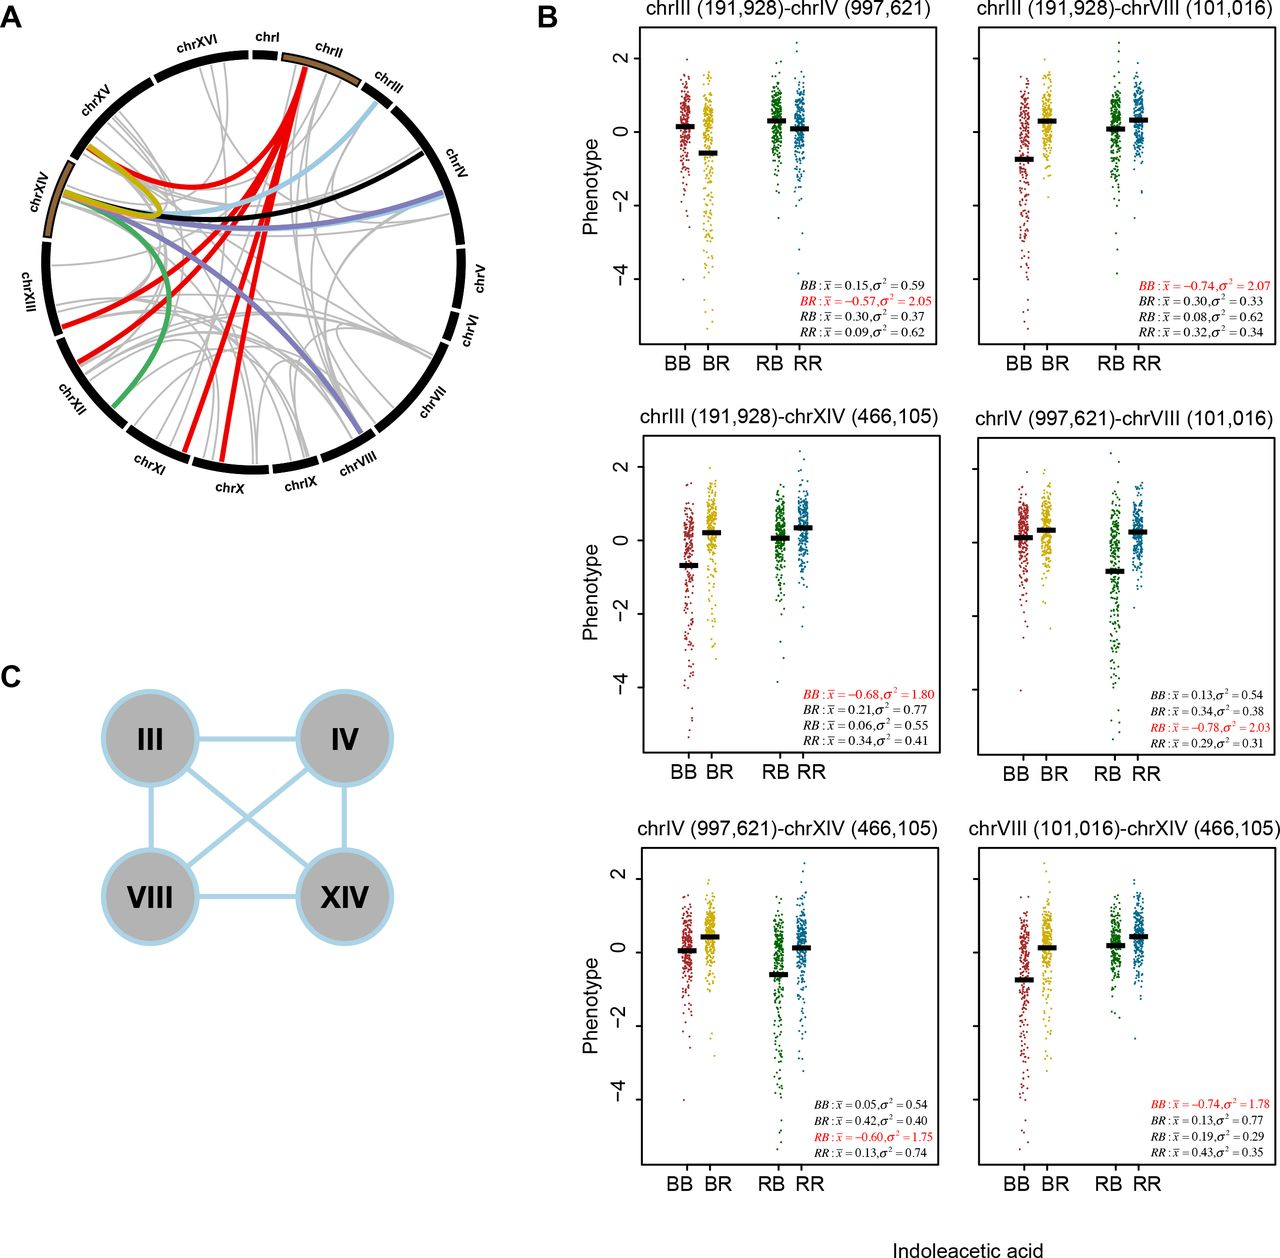 medium resolution of unraveling the genetic architecture of cryptic genetic variation biorxiv